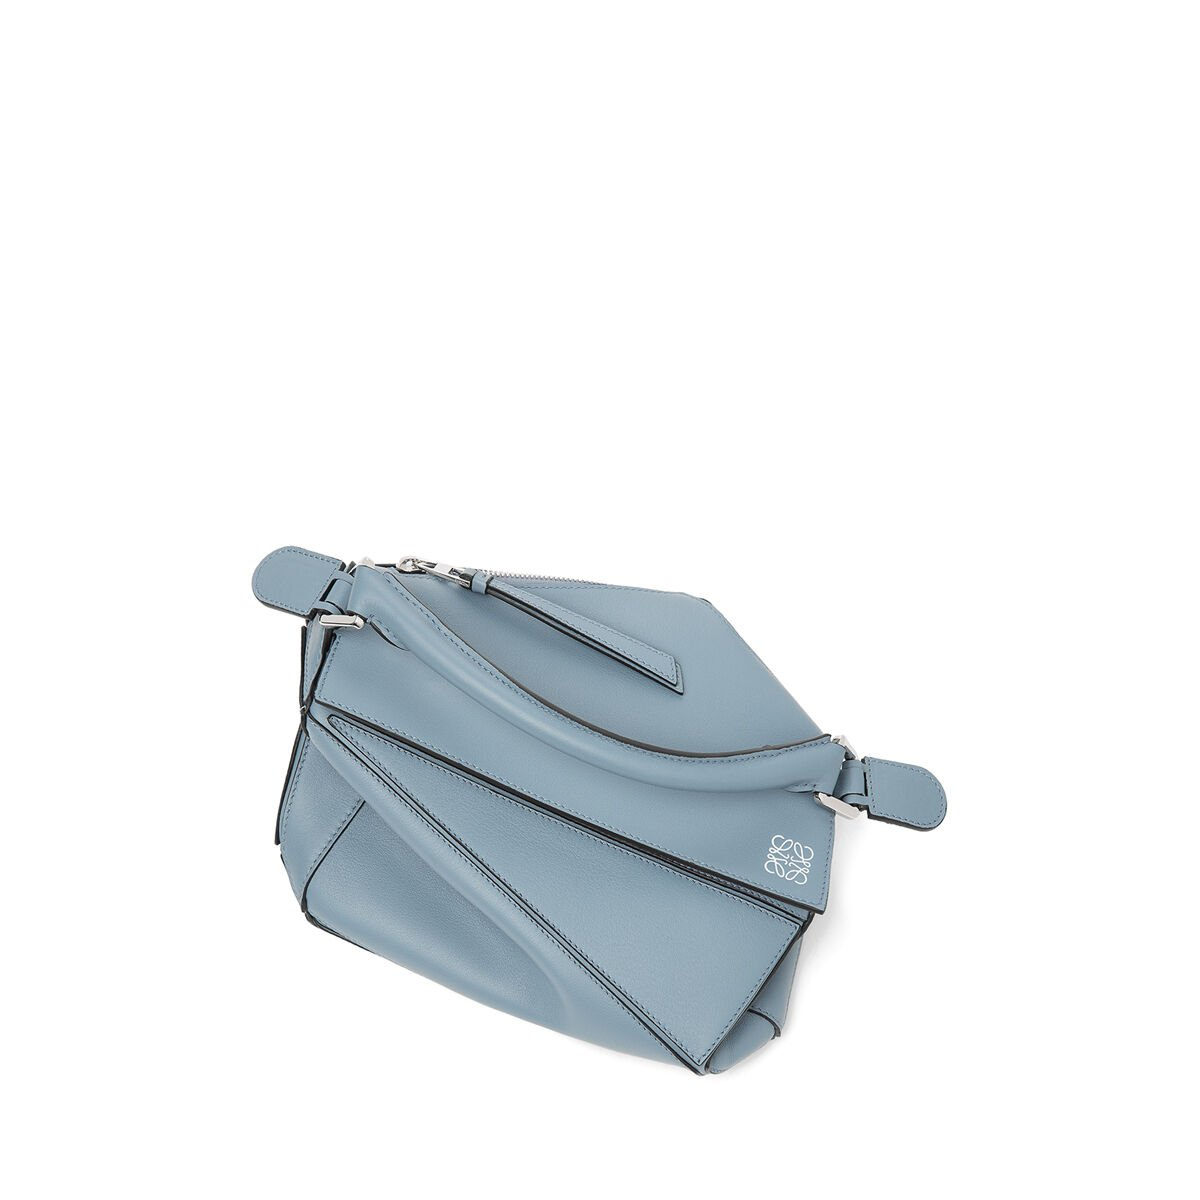 LOEWE Puzzle Small Bag 灰蓝色 all